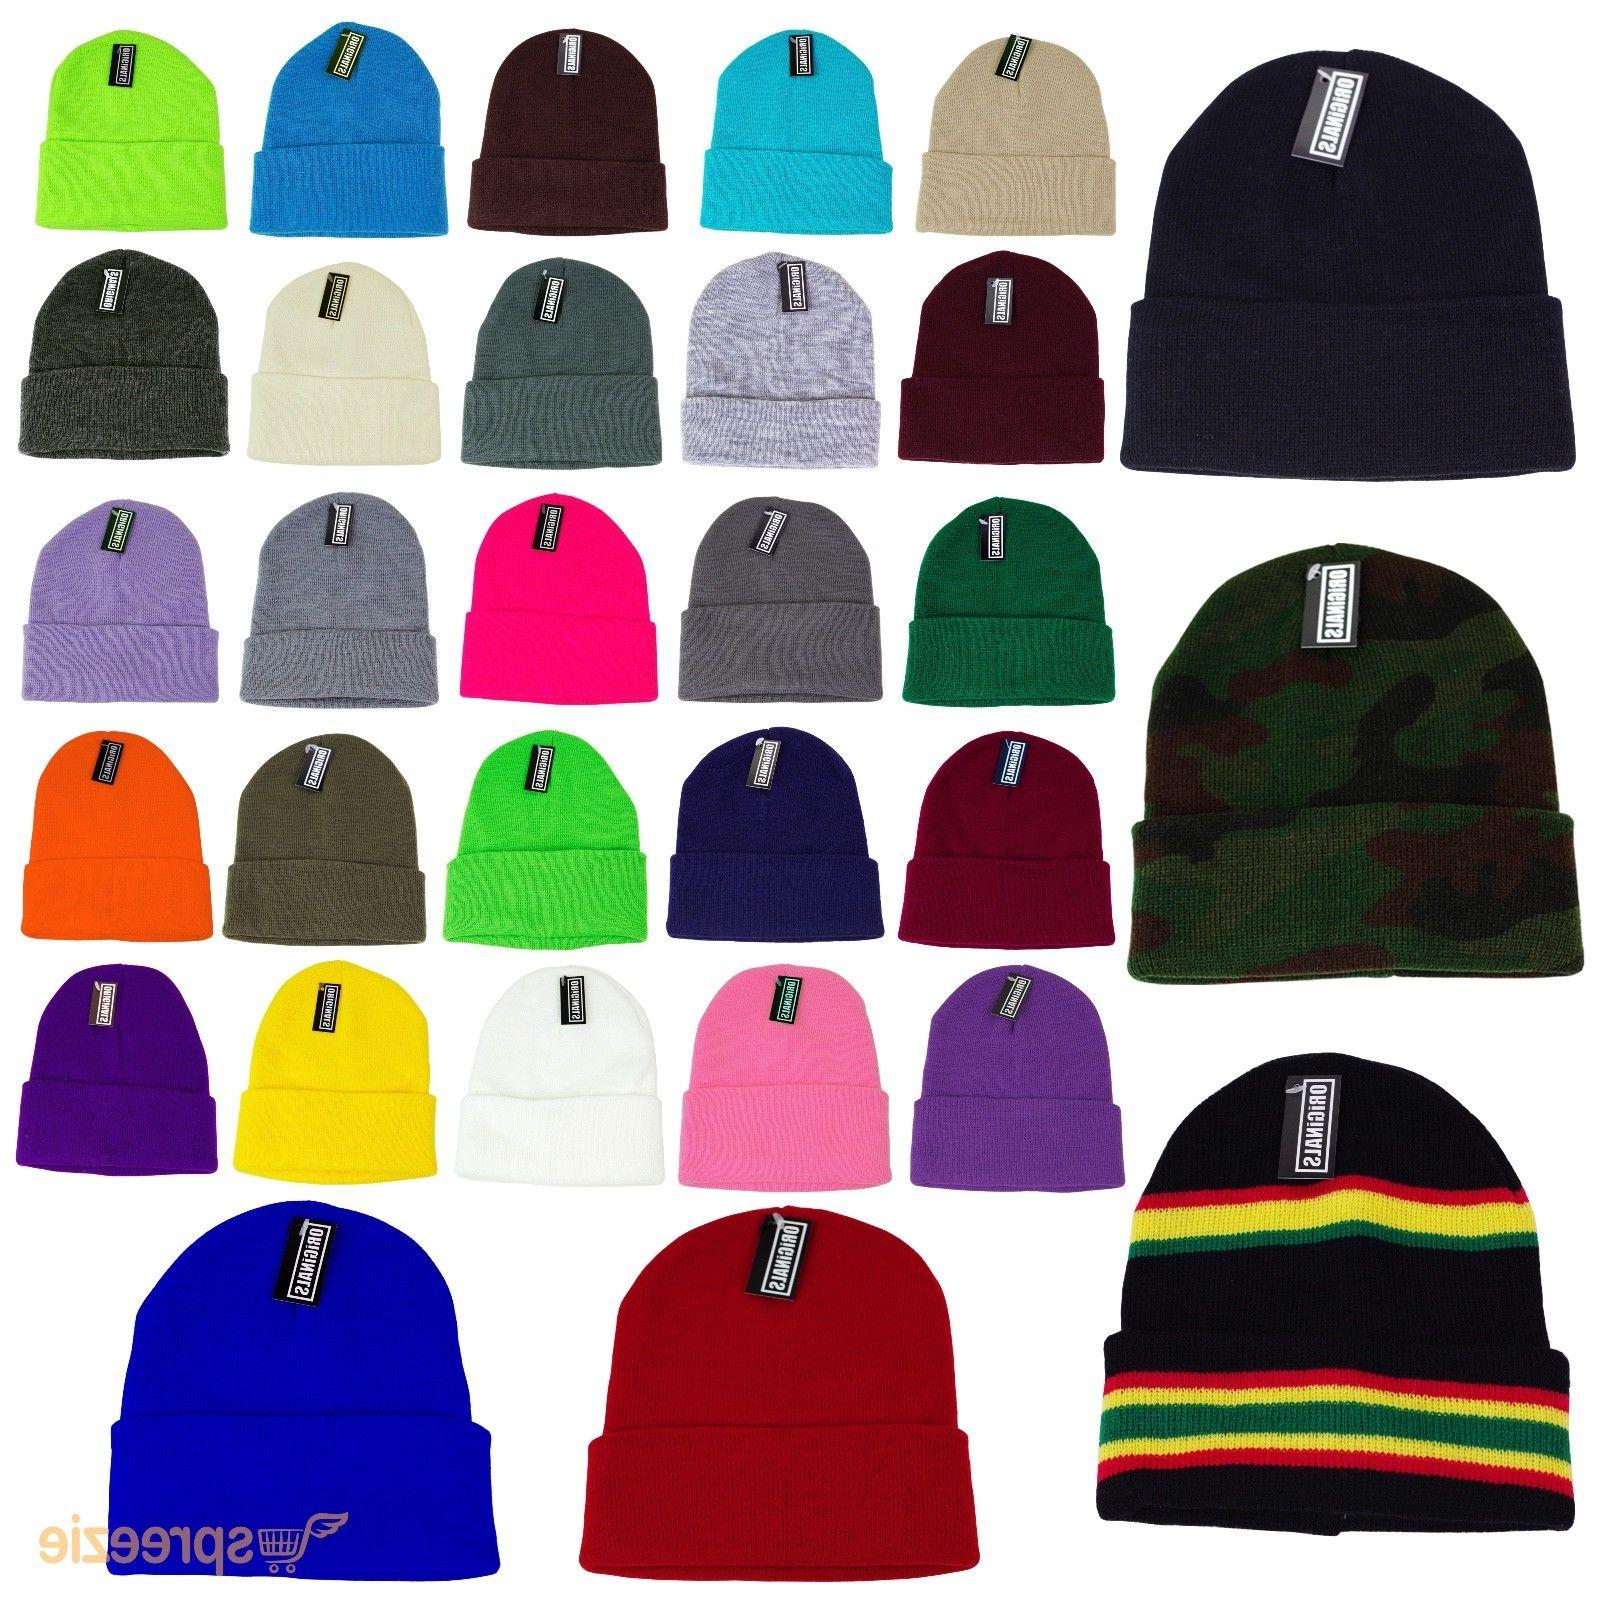 62353e45066ab8 Beanie Plain Knit Ski Hat Skull Cap Cuff Warm Winter Blank C